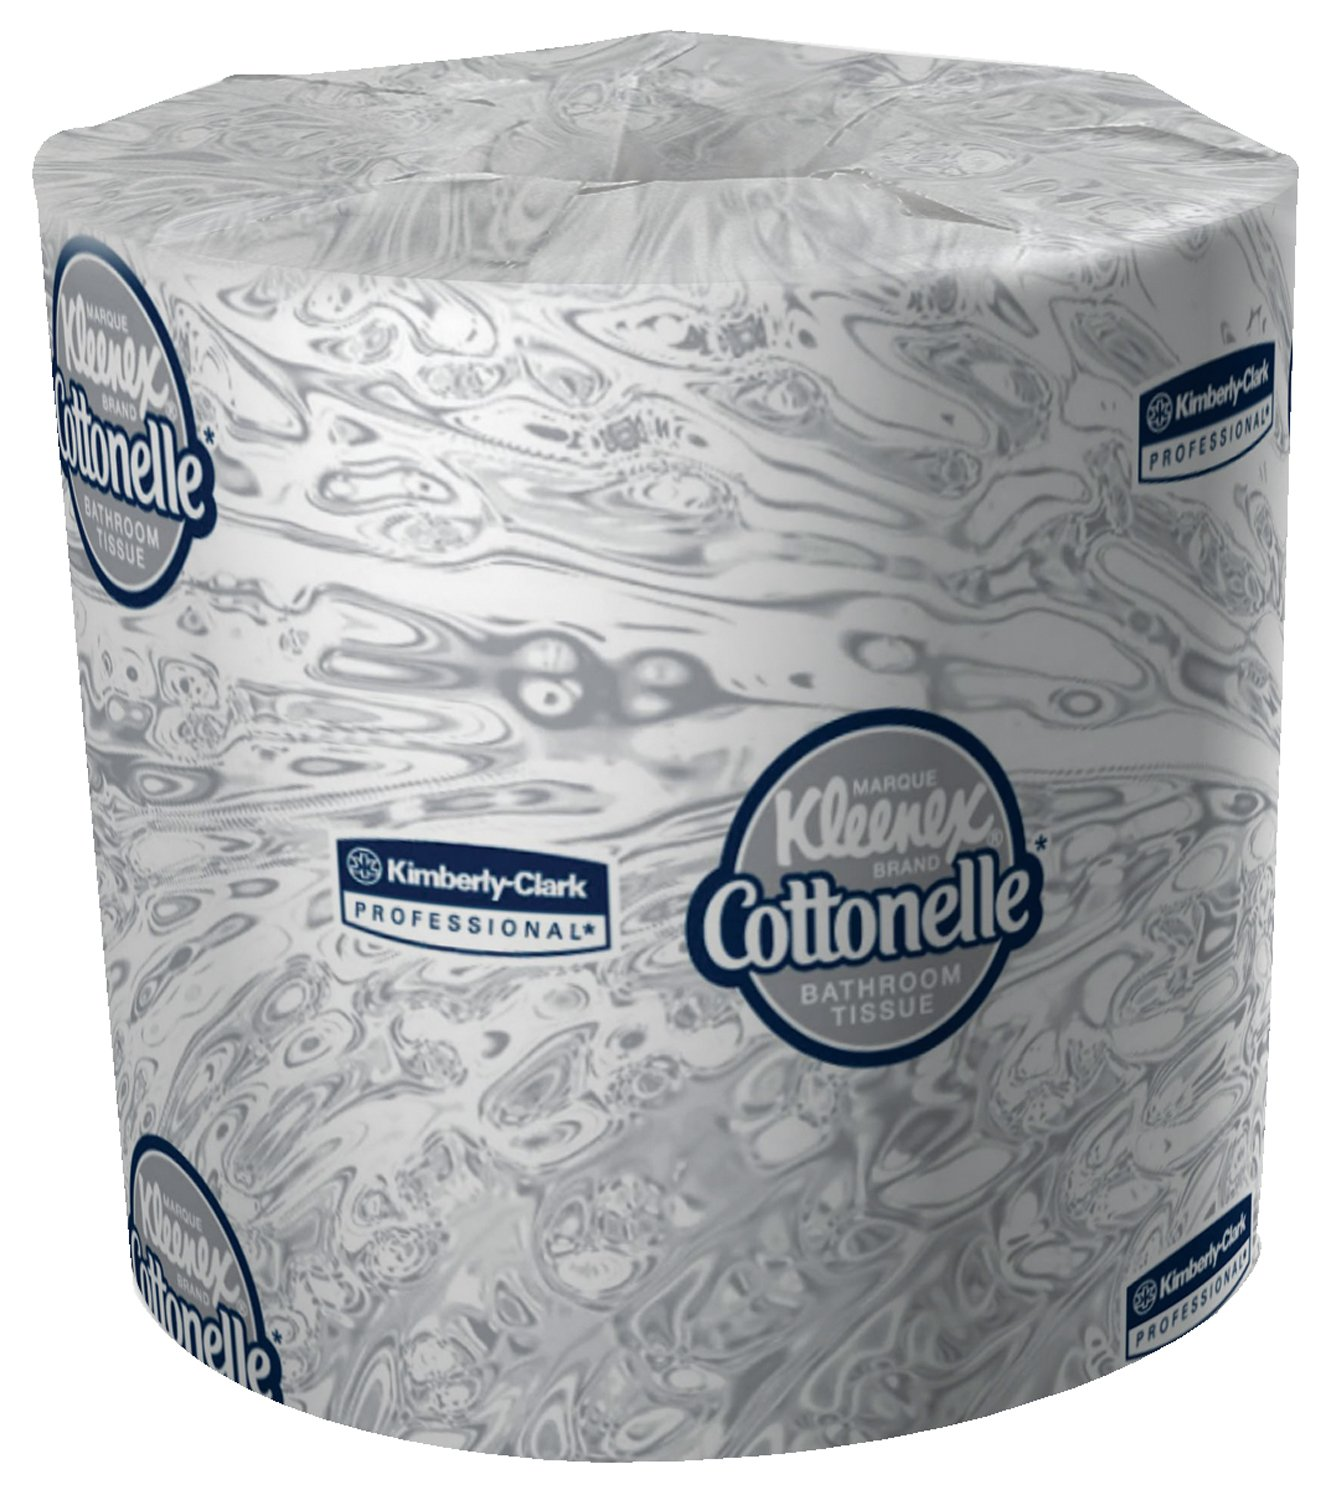 Kimberly-Clark Professional 17713 Kleenex Cottonelle Bathroom Tissue with 60 Rolls per Case, 4.09'' x 4'', 172.46' (Pack of 60)